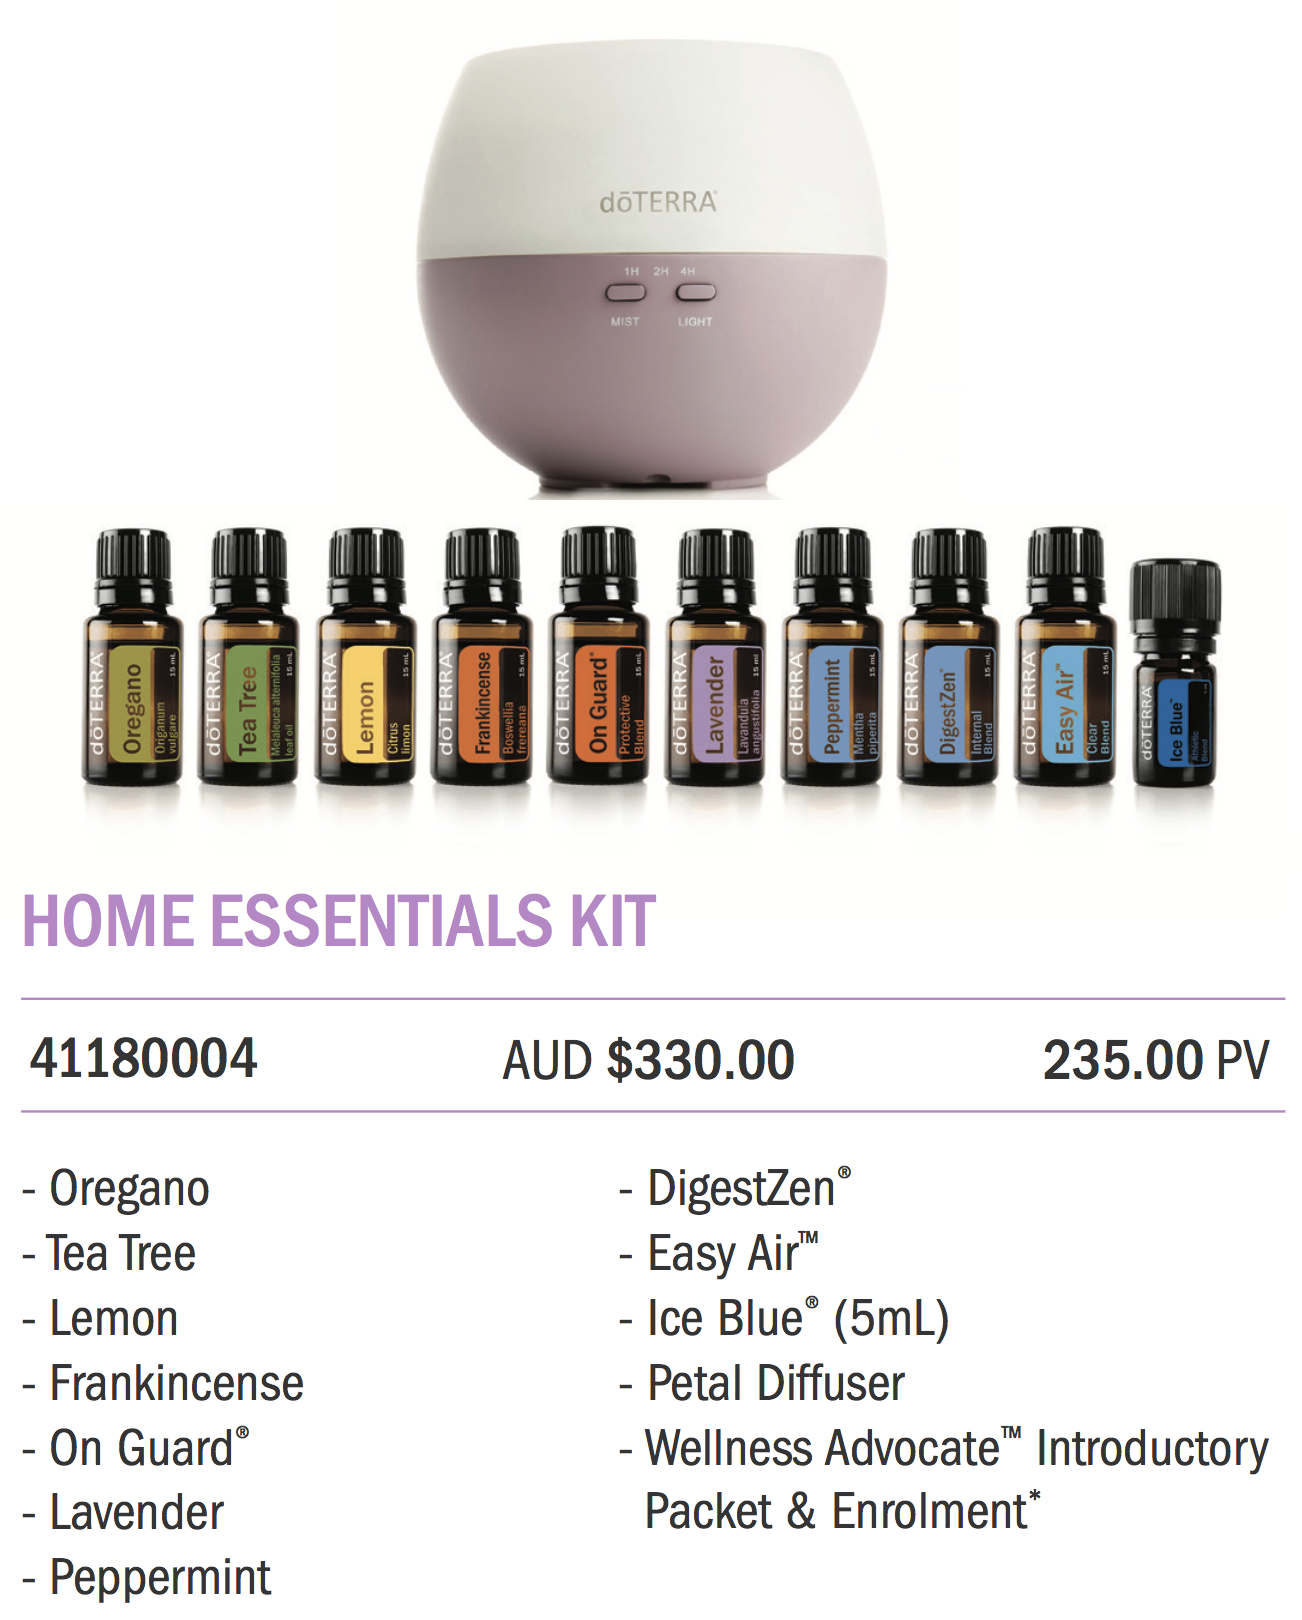 Home Essential Kit - 10 Essential Oils and a Diffuser